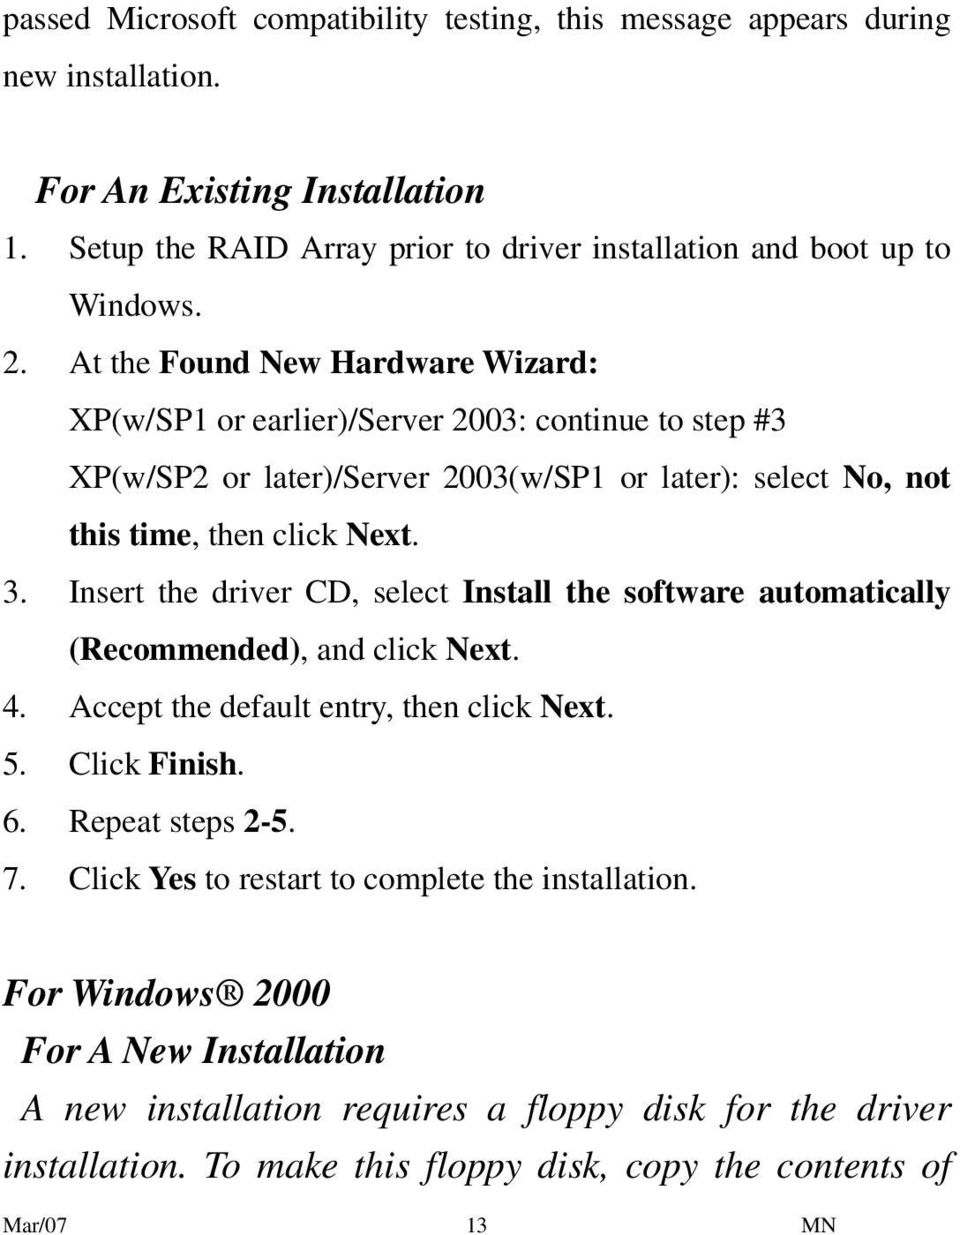 Insert the driver CD, select Install the software automatically (Recommended), and click Next. 4. Accept the default entry, then click Next. 5. Click Finish. 6. Repeat steps 2-5. 7.